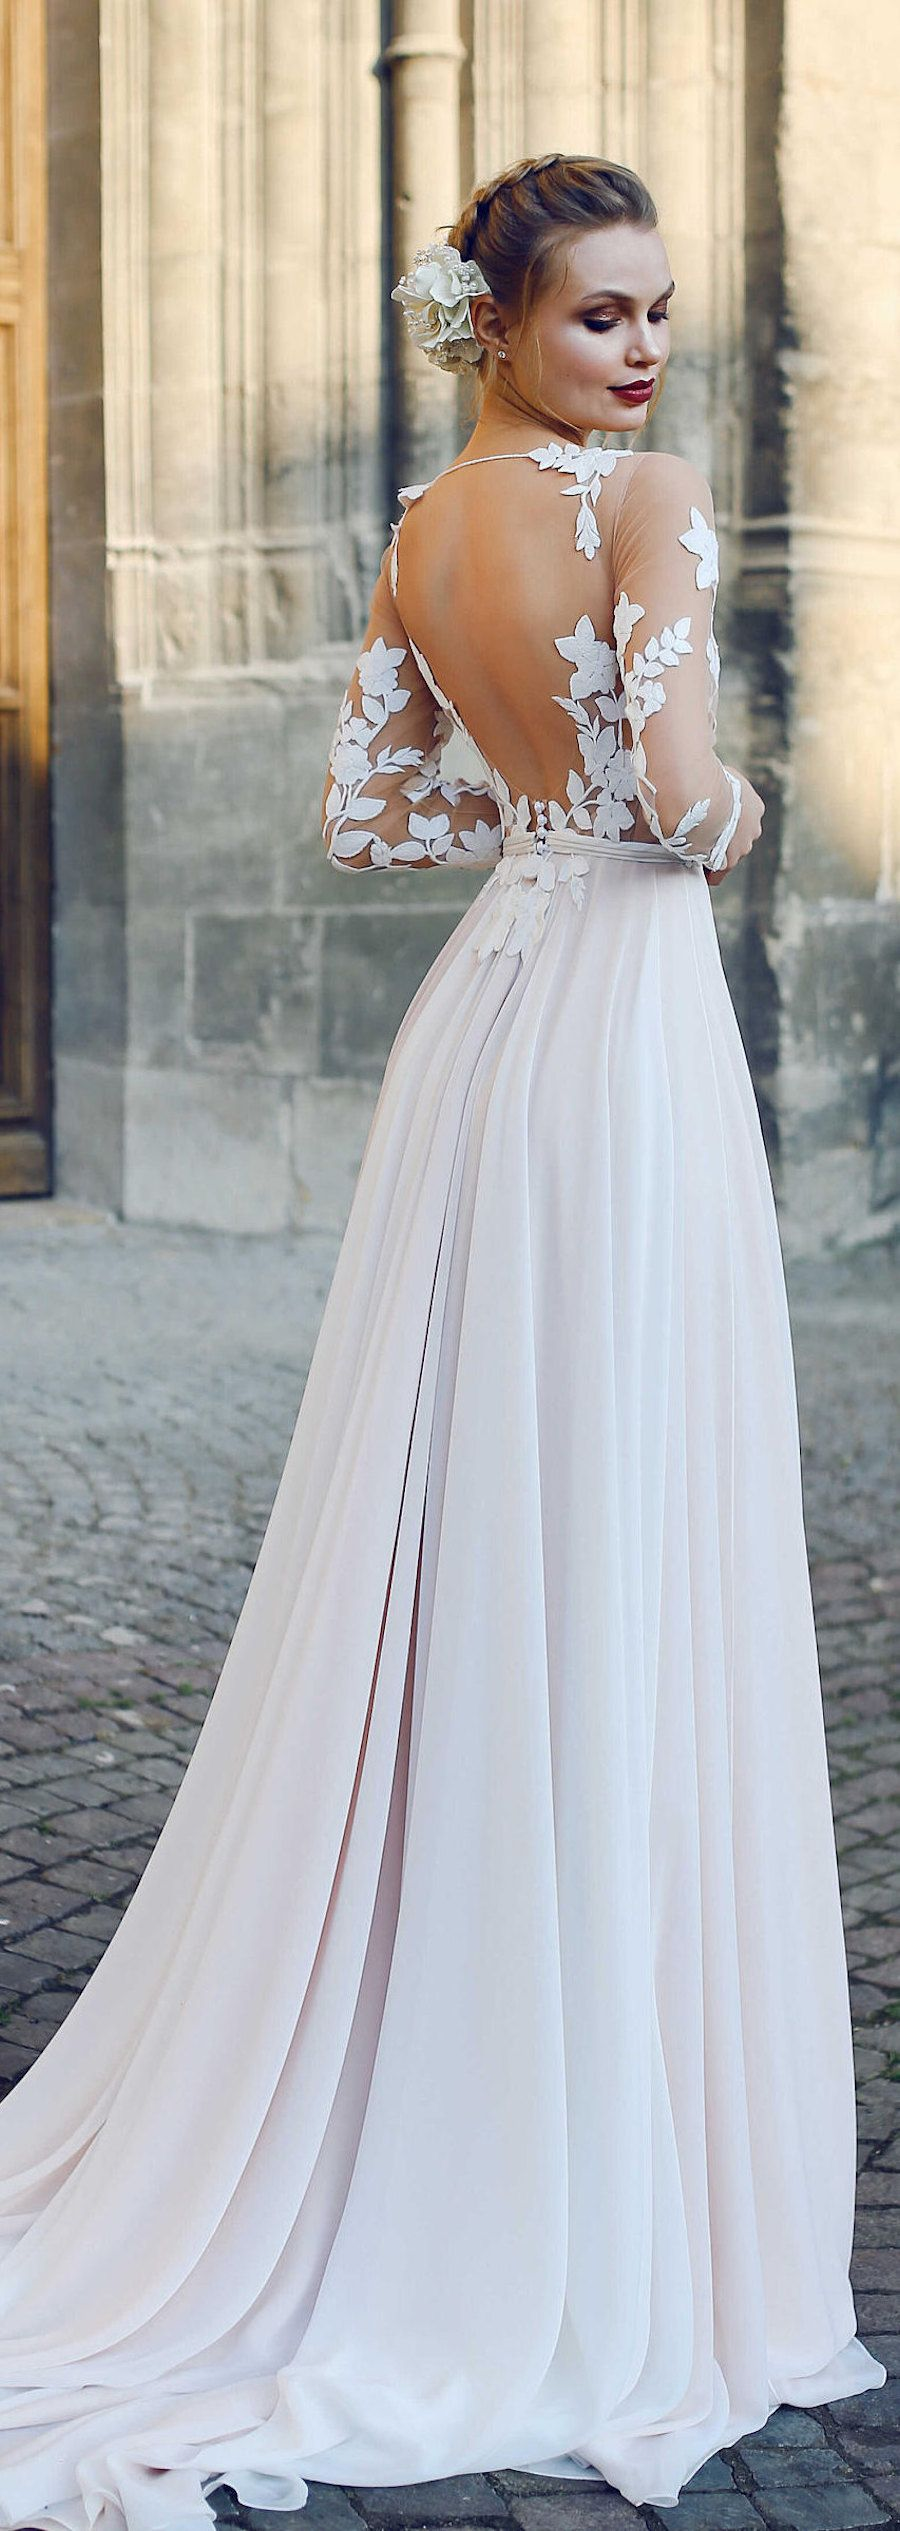 fabulous wedding dresses you can buy on etsy wedding dress